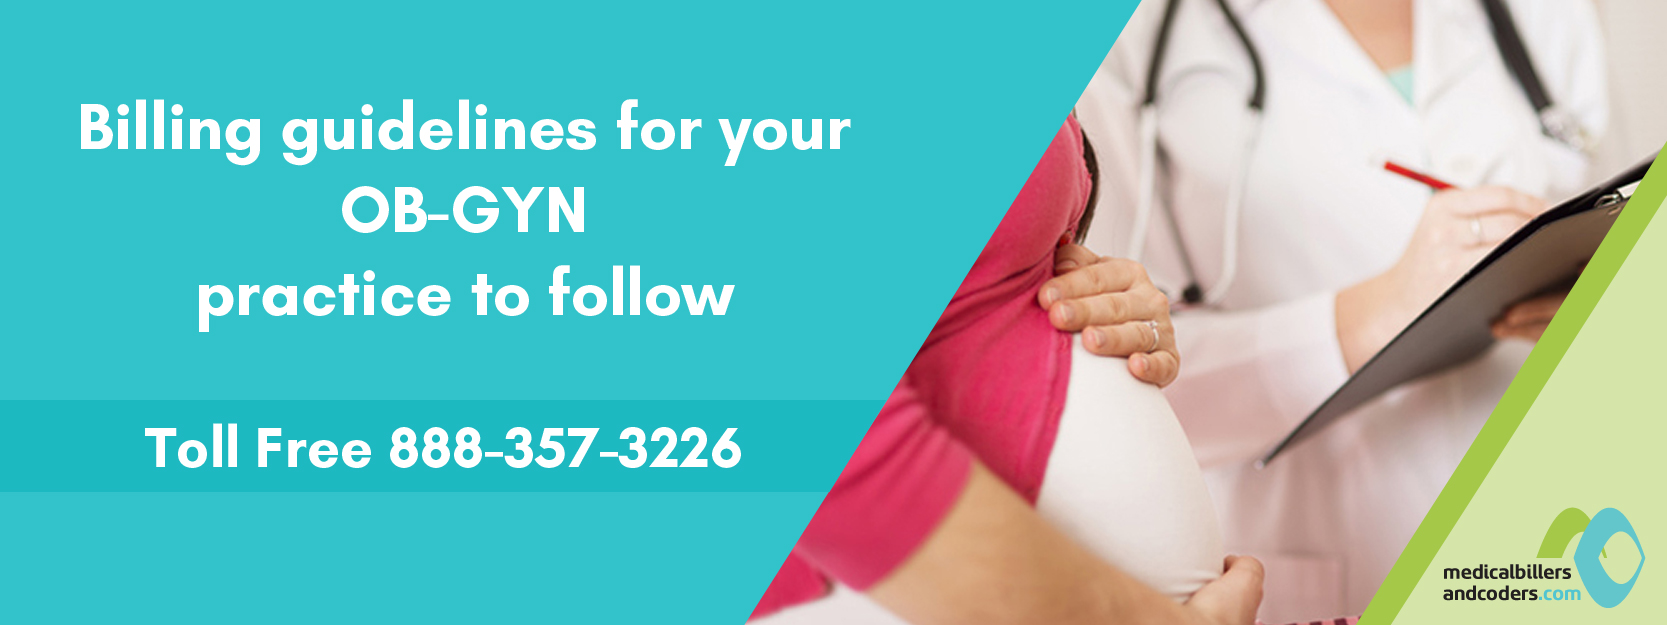 Billing-guidelines-for-your-OB-GYN-practice-to-follow